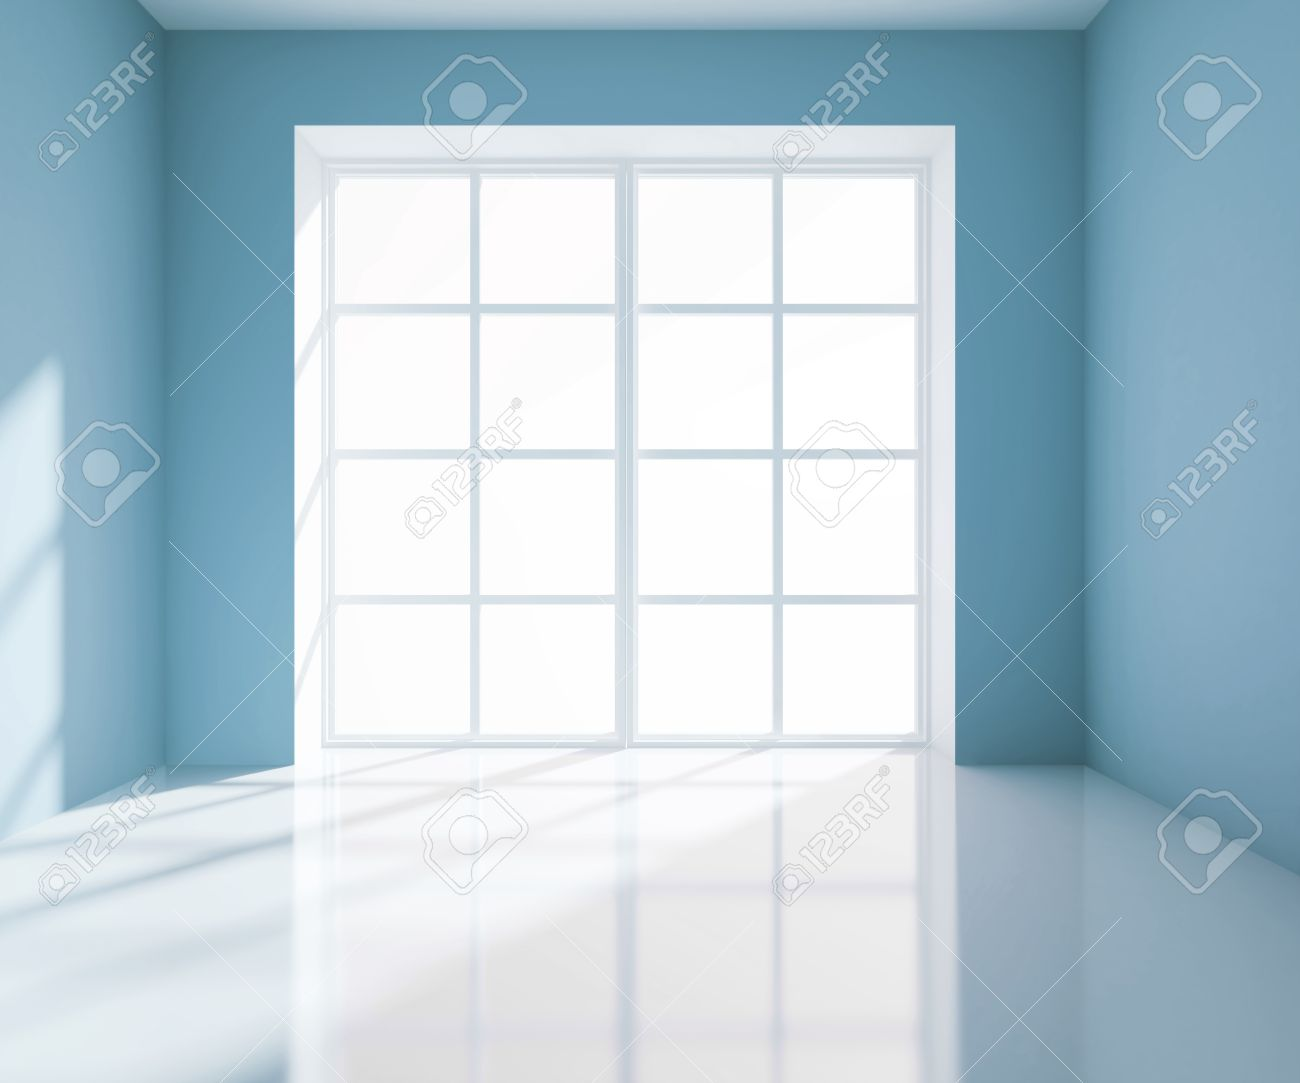 empty light blue room with white window stock photo, picture and